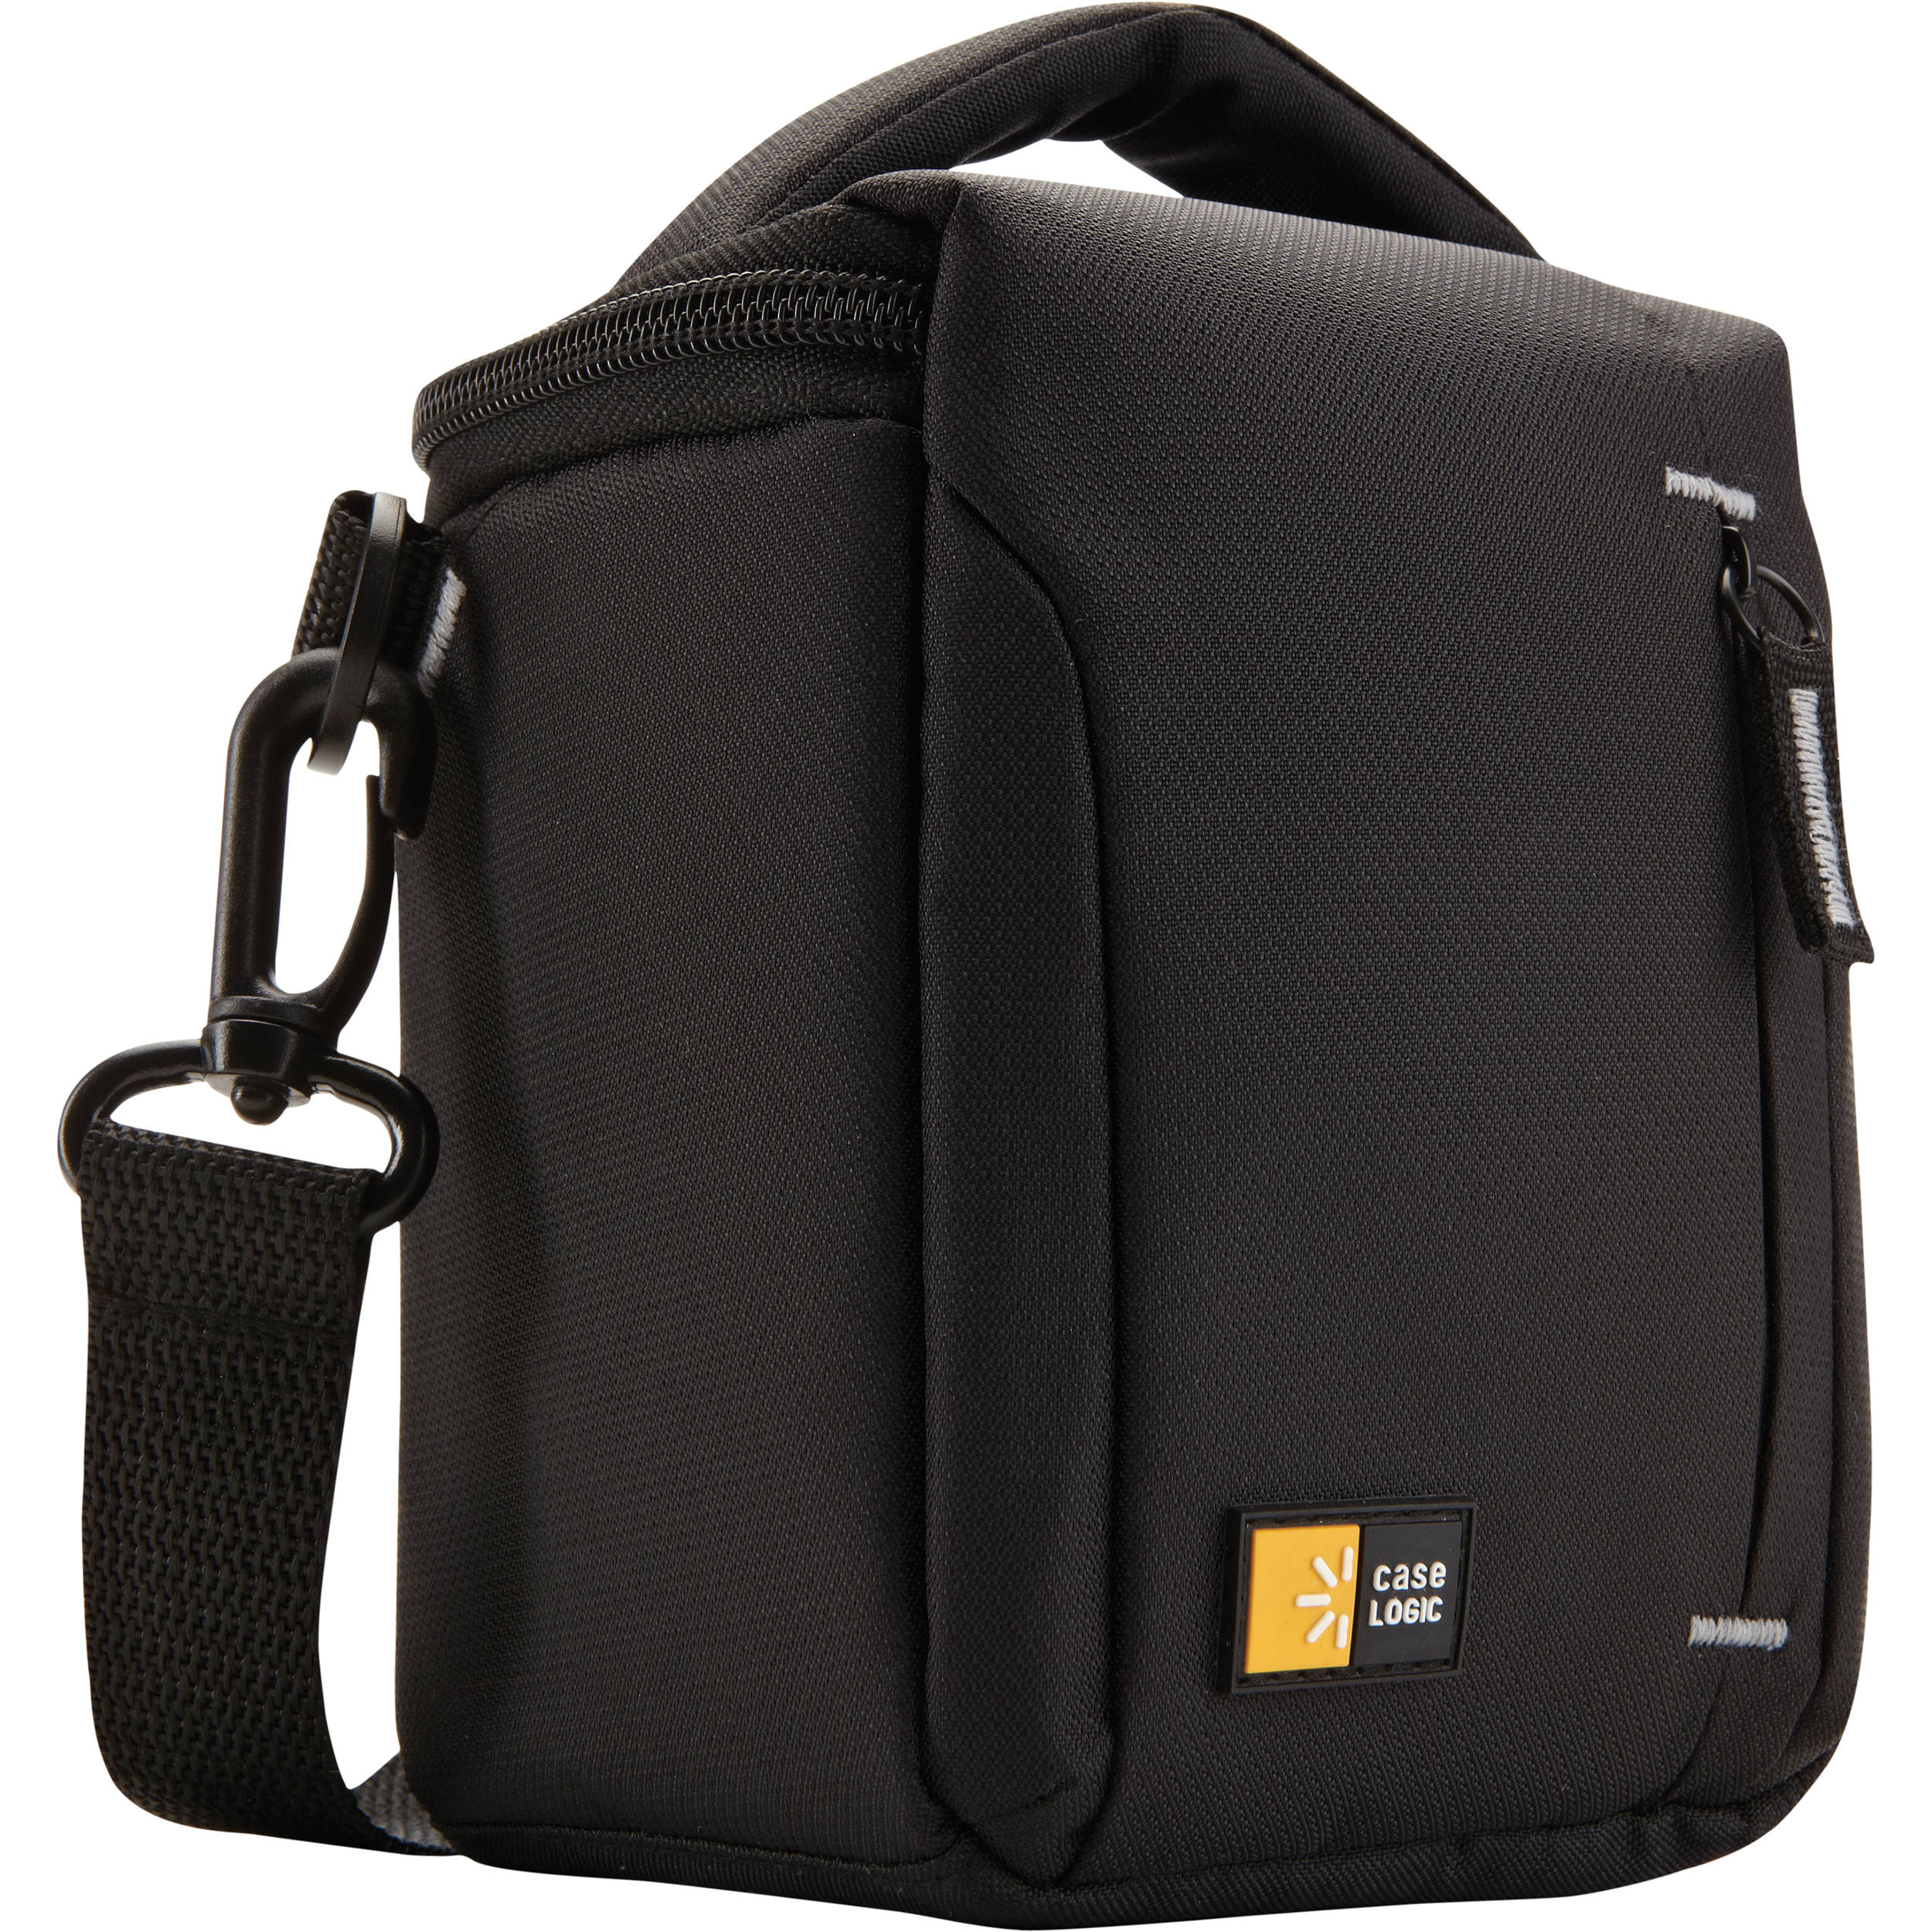 Case Logic TBC-404 Compact High Zoom Camera Case (Black)